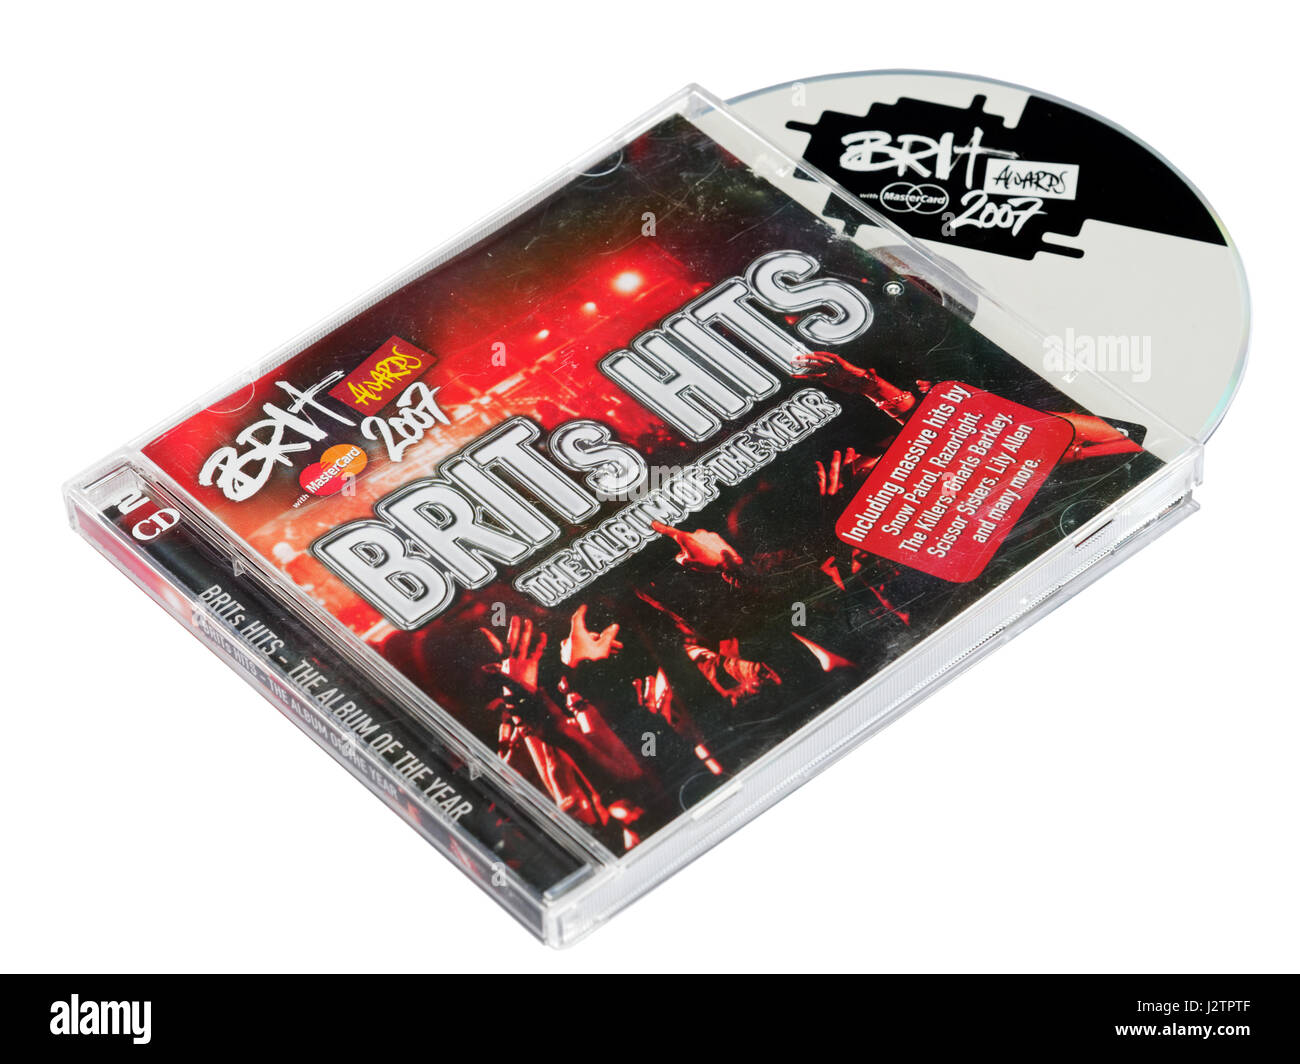 Brits Hits - a compilation CD of the best music from the annual Brit Awards - Stock Image